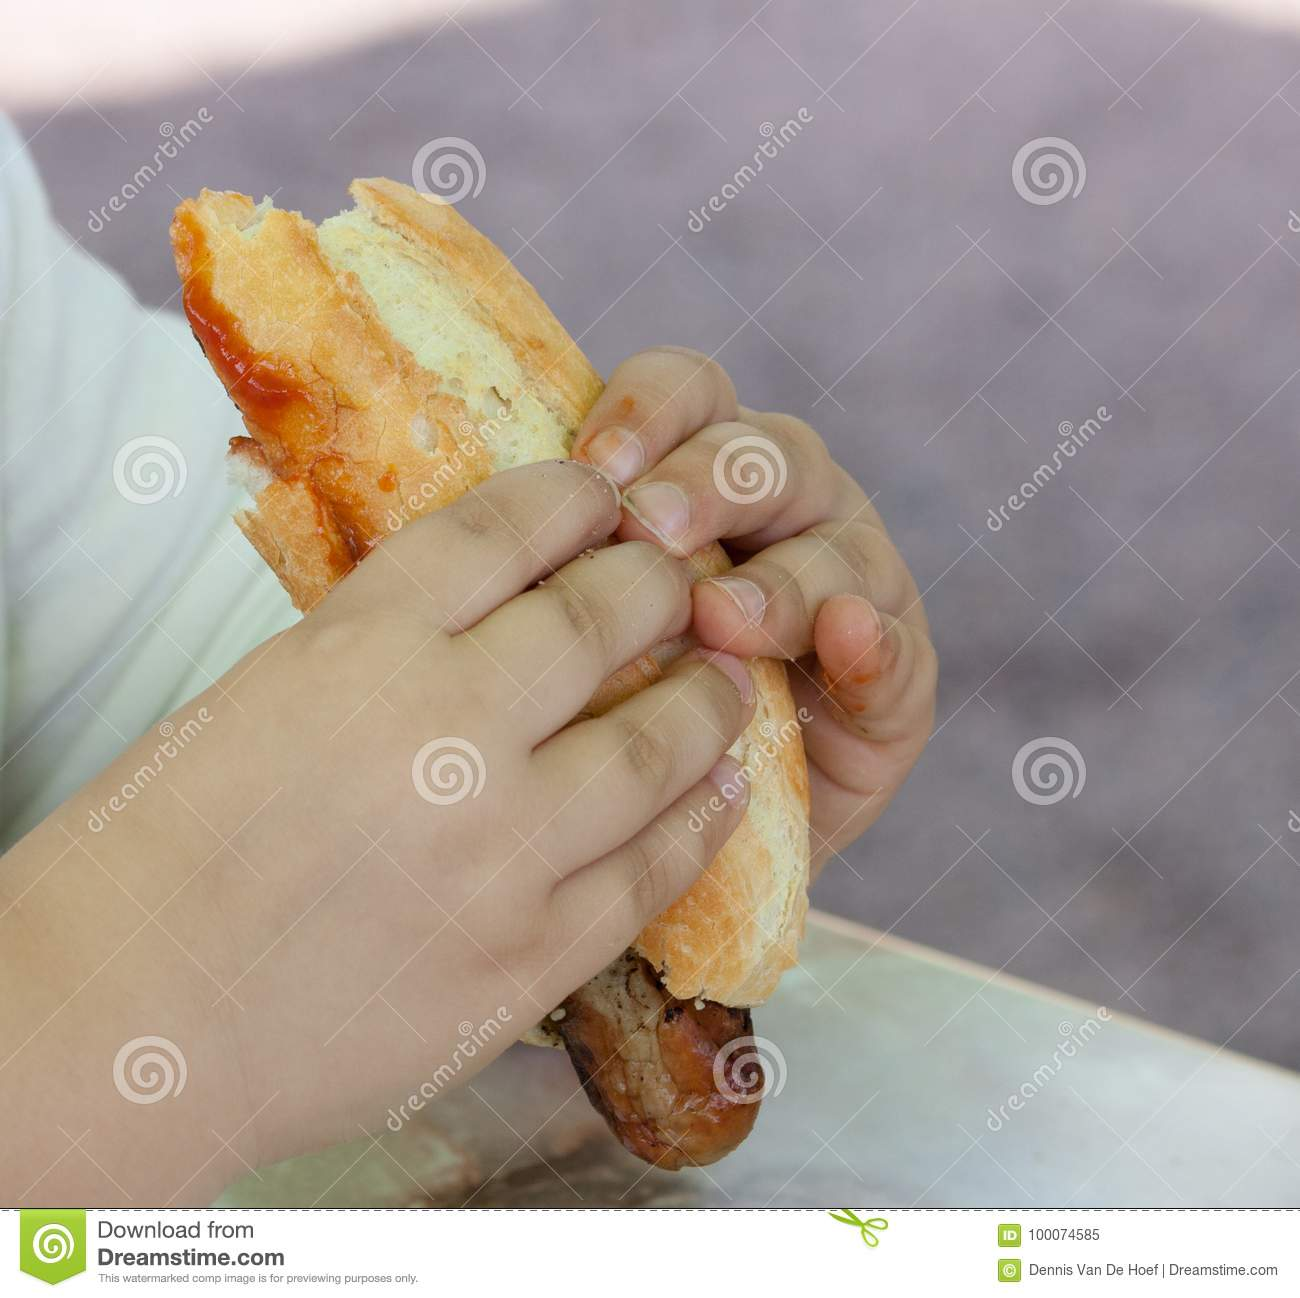 Child eating sausage in bread.